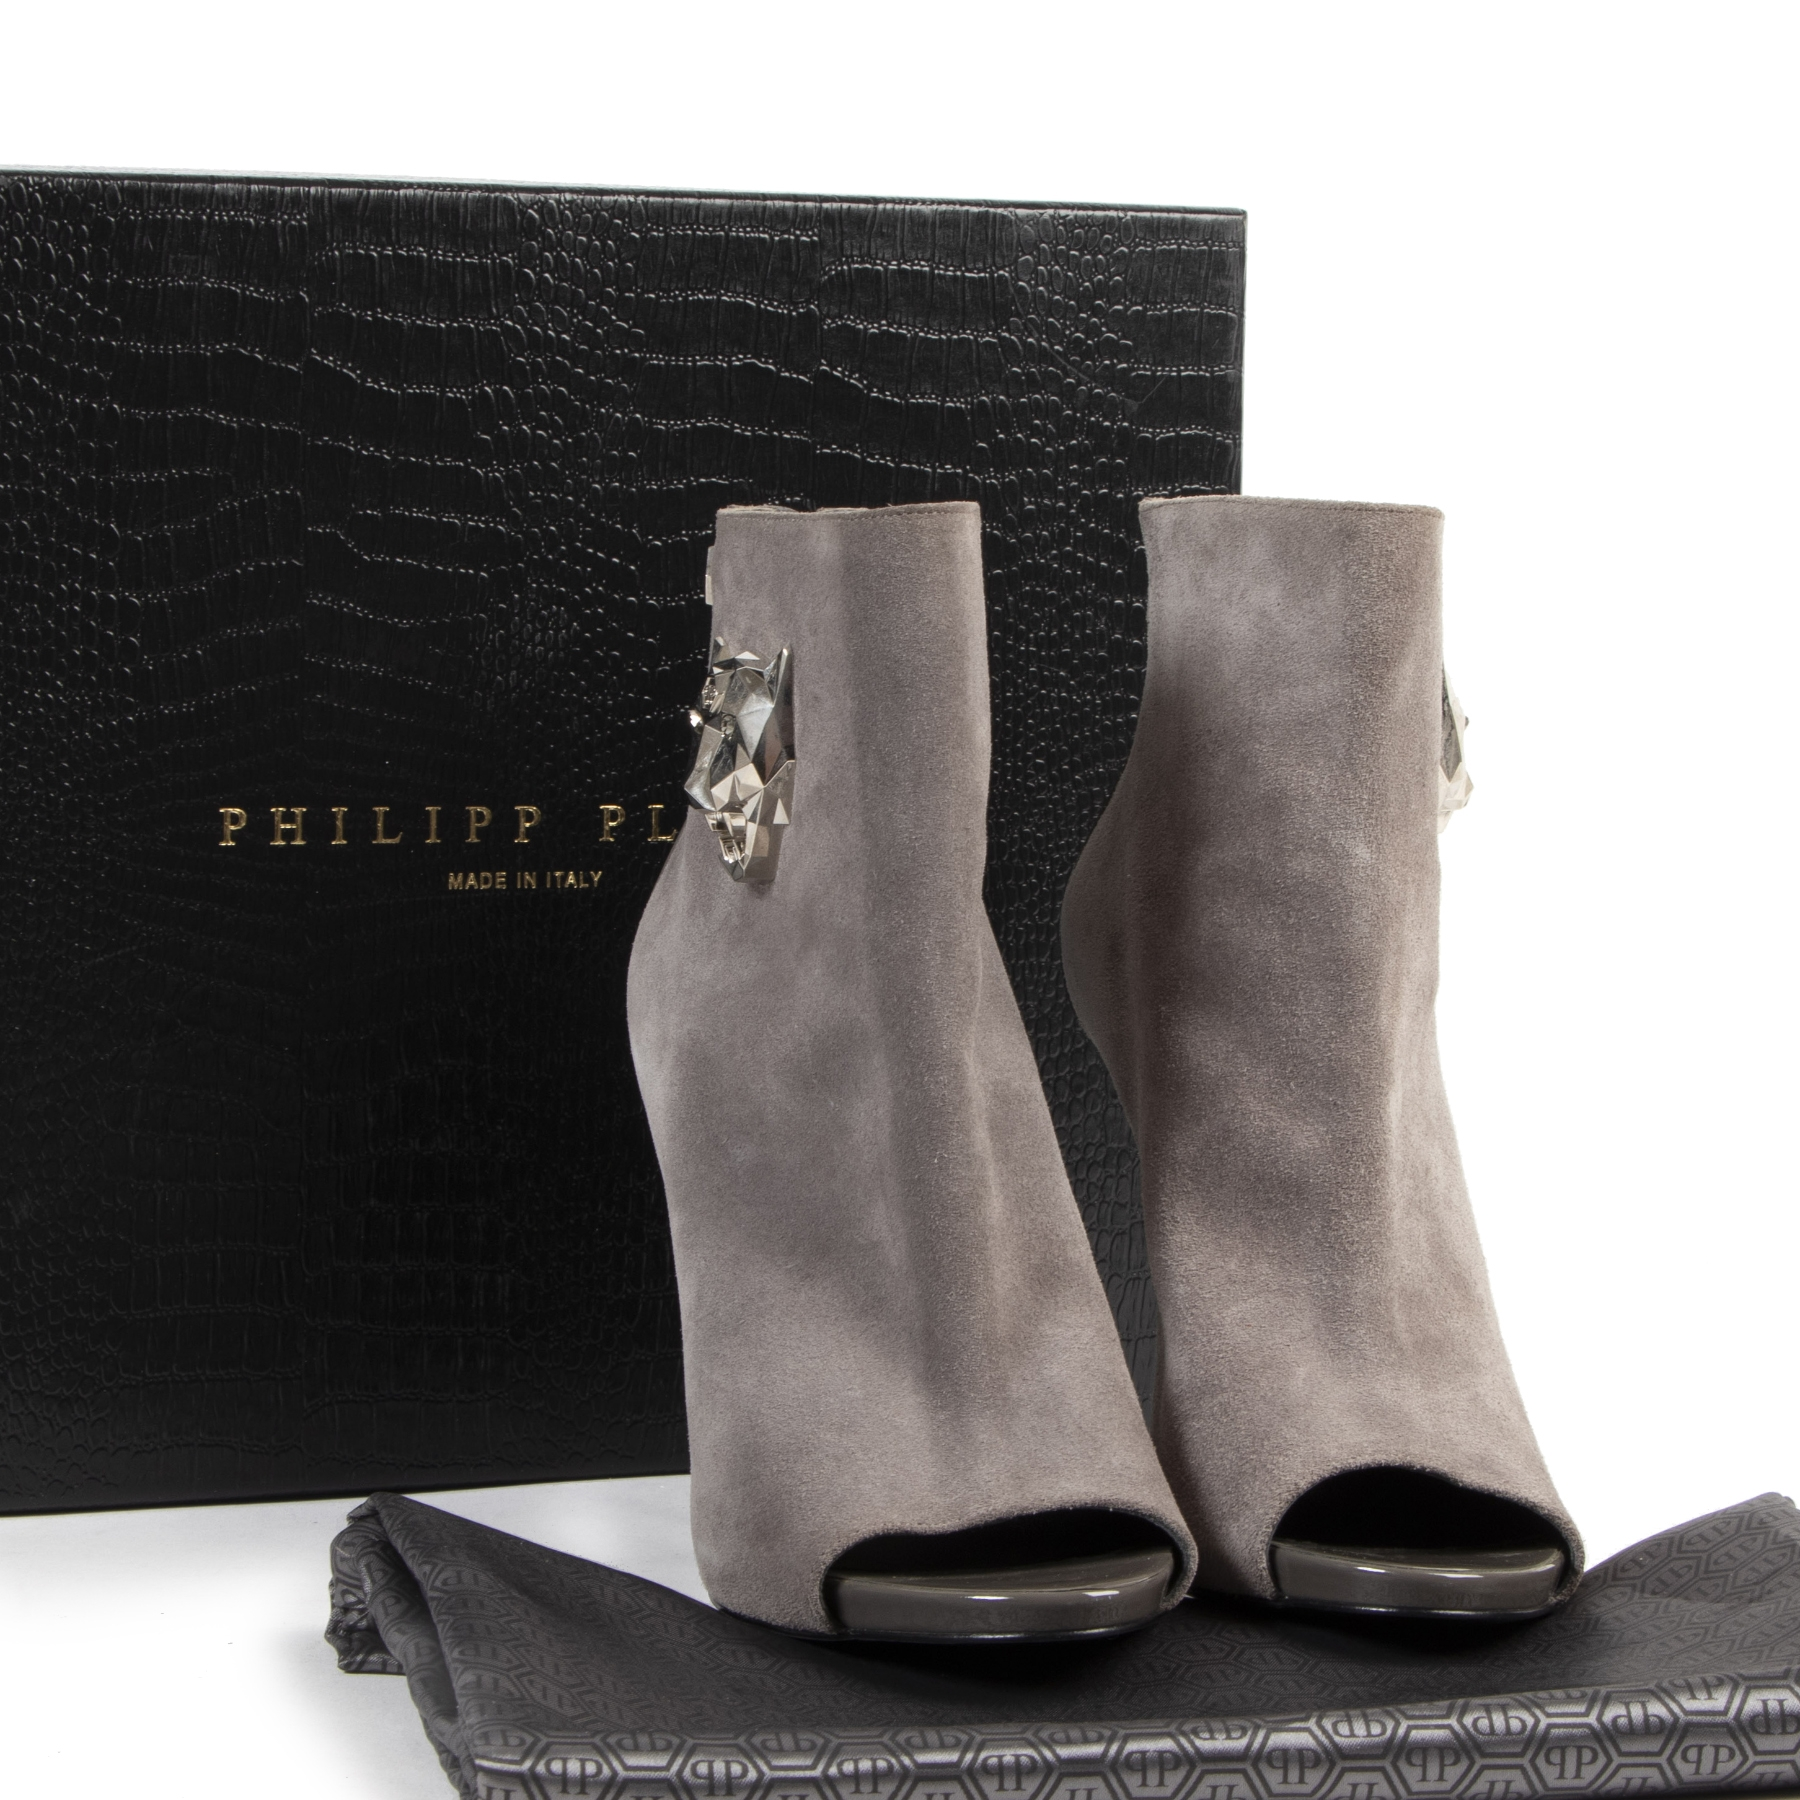 Philipp Plein Yesterday Grey Suede and Patent Leather Open Toe Bootie